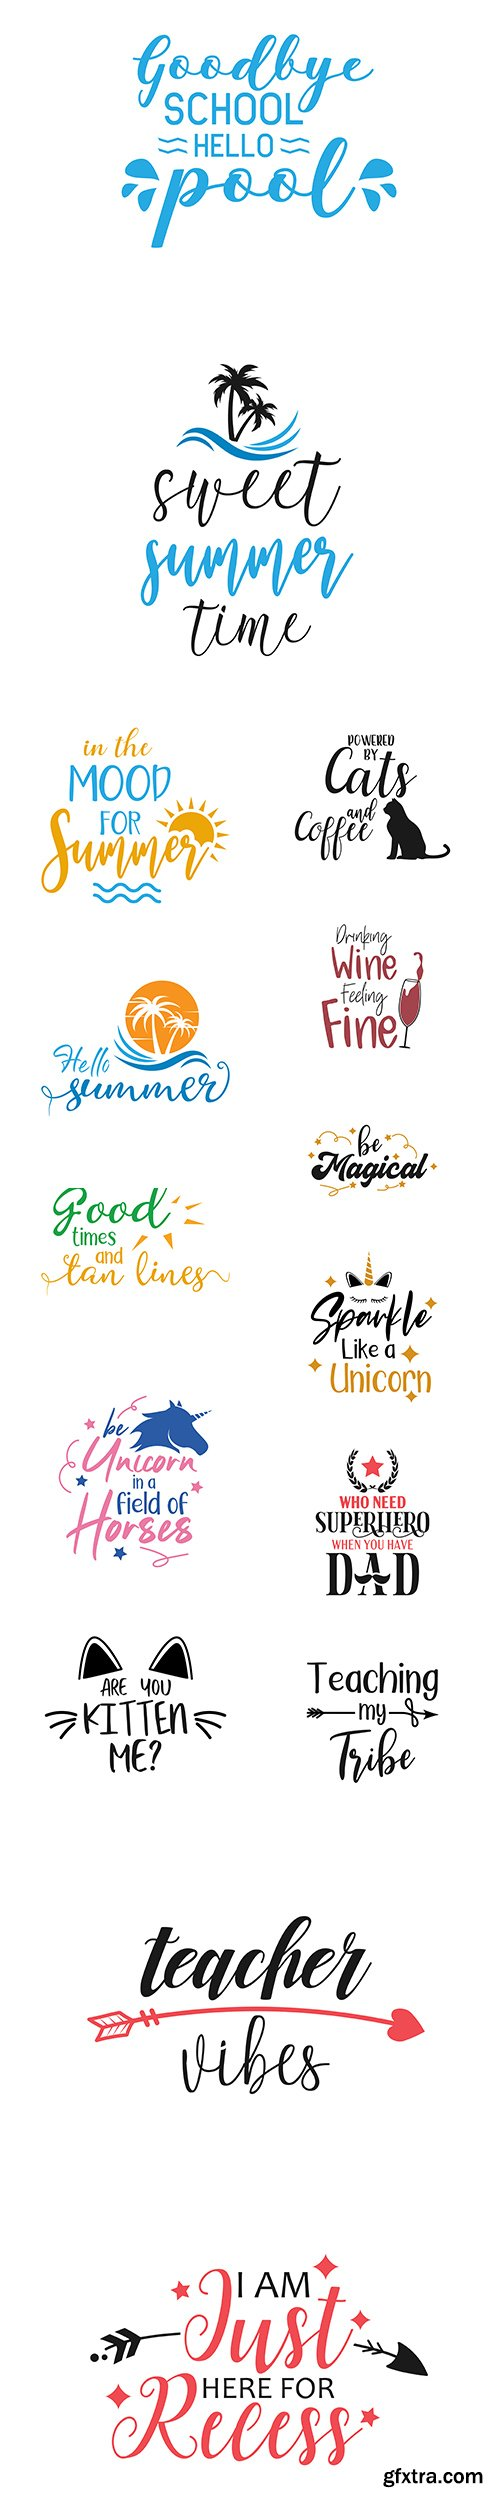 School, Summer, Unicorn and other Quote Lettering Typography Vector Set